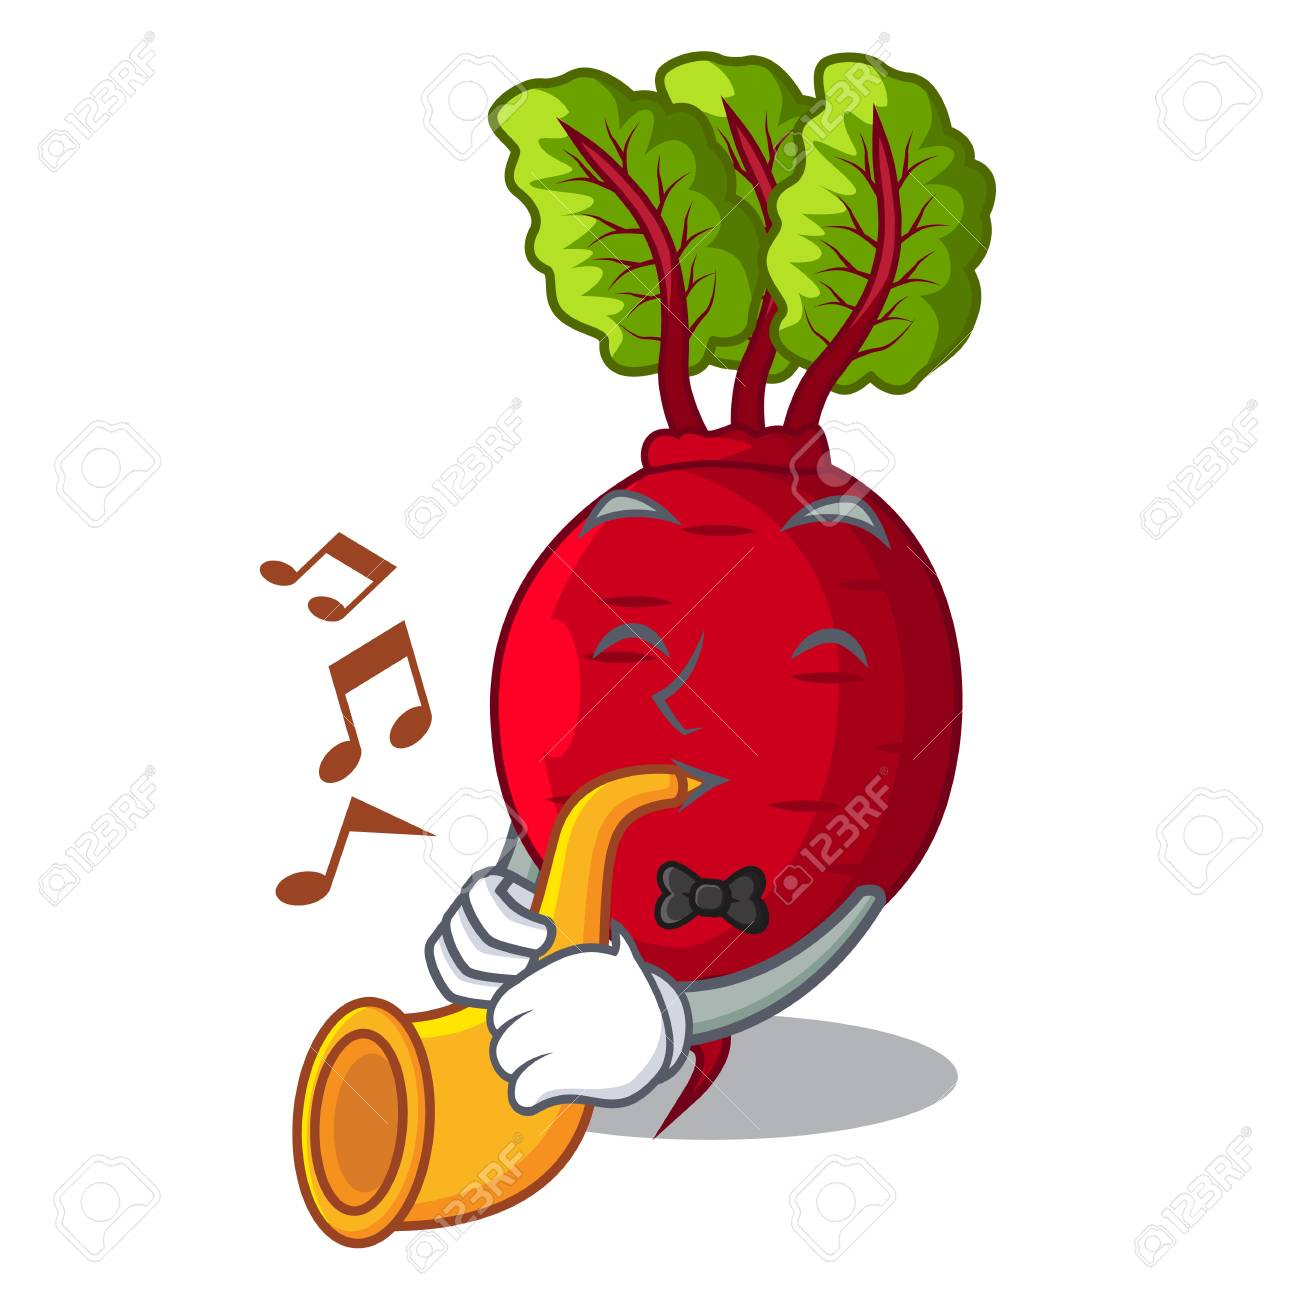 With trumpet beetroot with leaves isolated on mascot vector illustration - 109756600